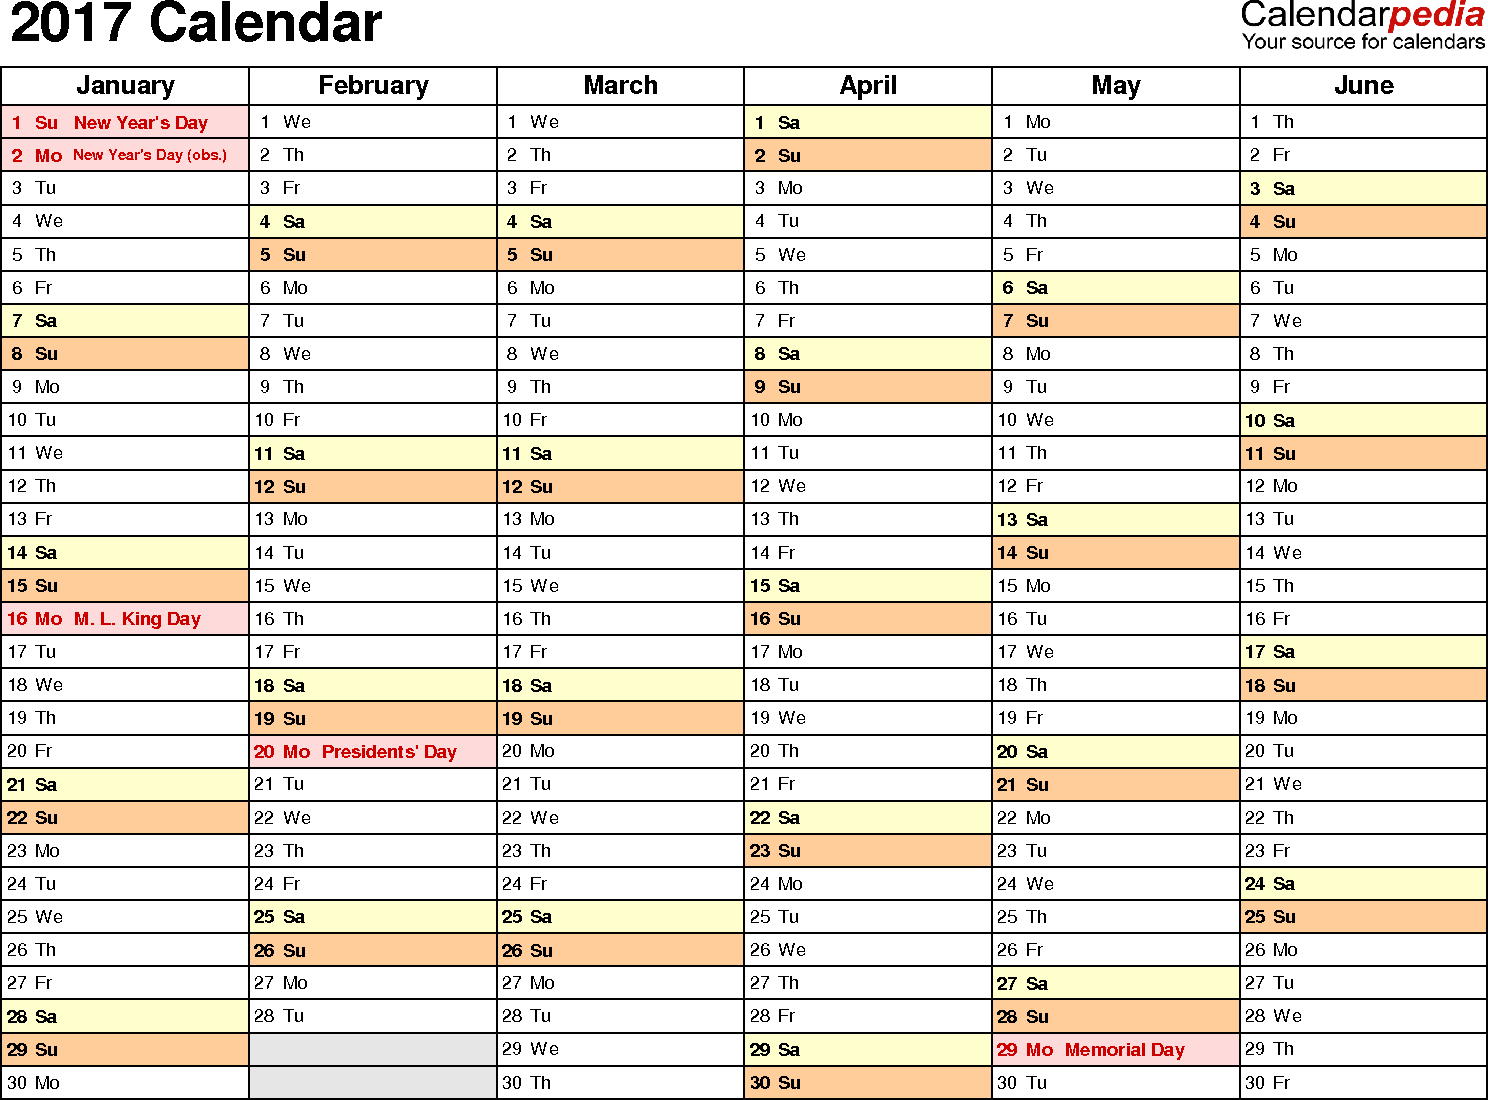 Ediblewildsus  Unusual  Calendar  Download  Free Printable Excel Templates Xls With Outstanding Template   Calendar For Excel Months Horizontally  Pages Landscape Orientation With Amazing Kolmogorov Smirnov Test Excel Also Excel Count Number Of Cells With Text In Addition Open Excel In Separate Windows And Mail Merge Excel  As Well As How To Show Developer Tab In Excel Additionally What If Excel From Calendarpediacom With Ediblewildsus  Outstanding  Calendar  Download  Free Printable Excel Templates Xls With Amazing Template   Calendar For Excel Months Horizontally  Pages Landscape Orientation And Unusual Kolmogorov Smirnov Test Excel Also Excel Count Number Of Cells With Text In Addition Open Excel In Separate Windows From Calendarpediacom